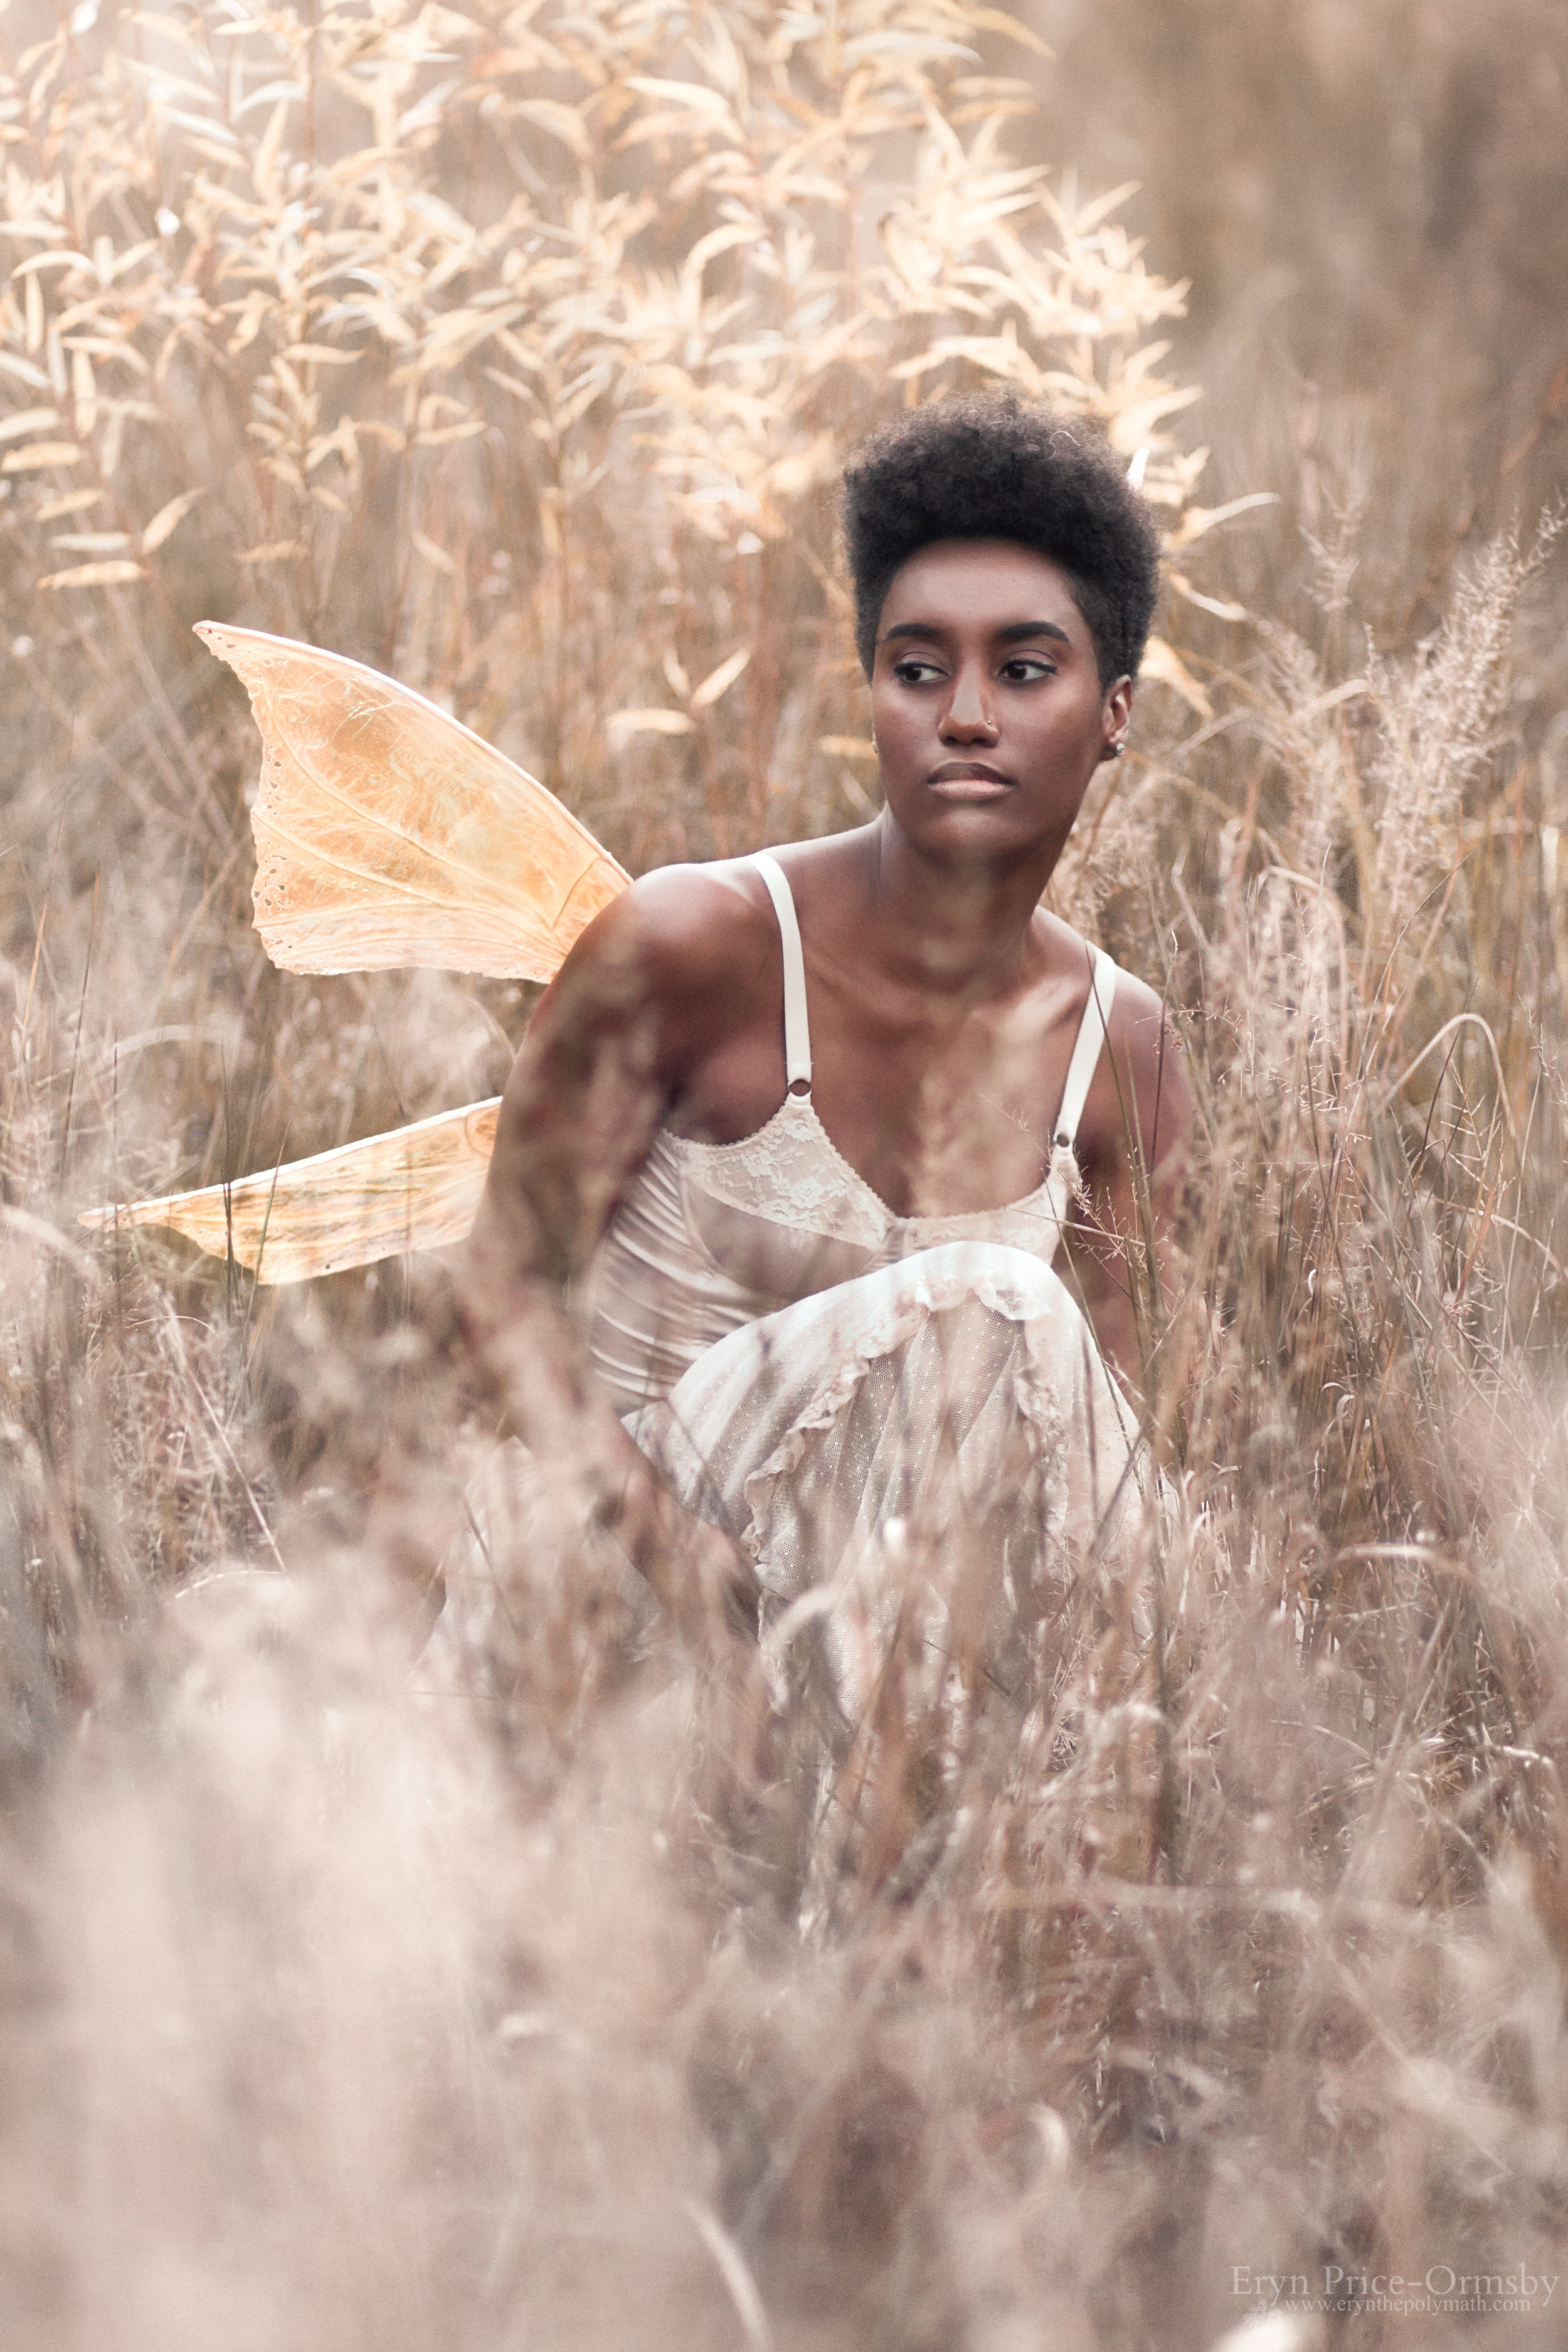 Veined Royal Wings | Medium | Gold | Custom Holes Model | Mikaila Ware Photography | Eryn Price-Ormsby